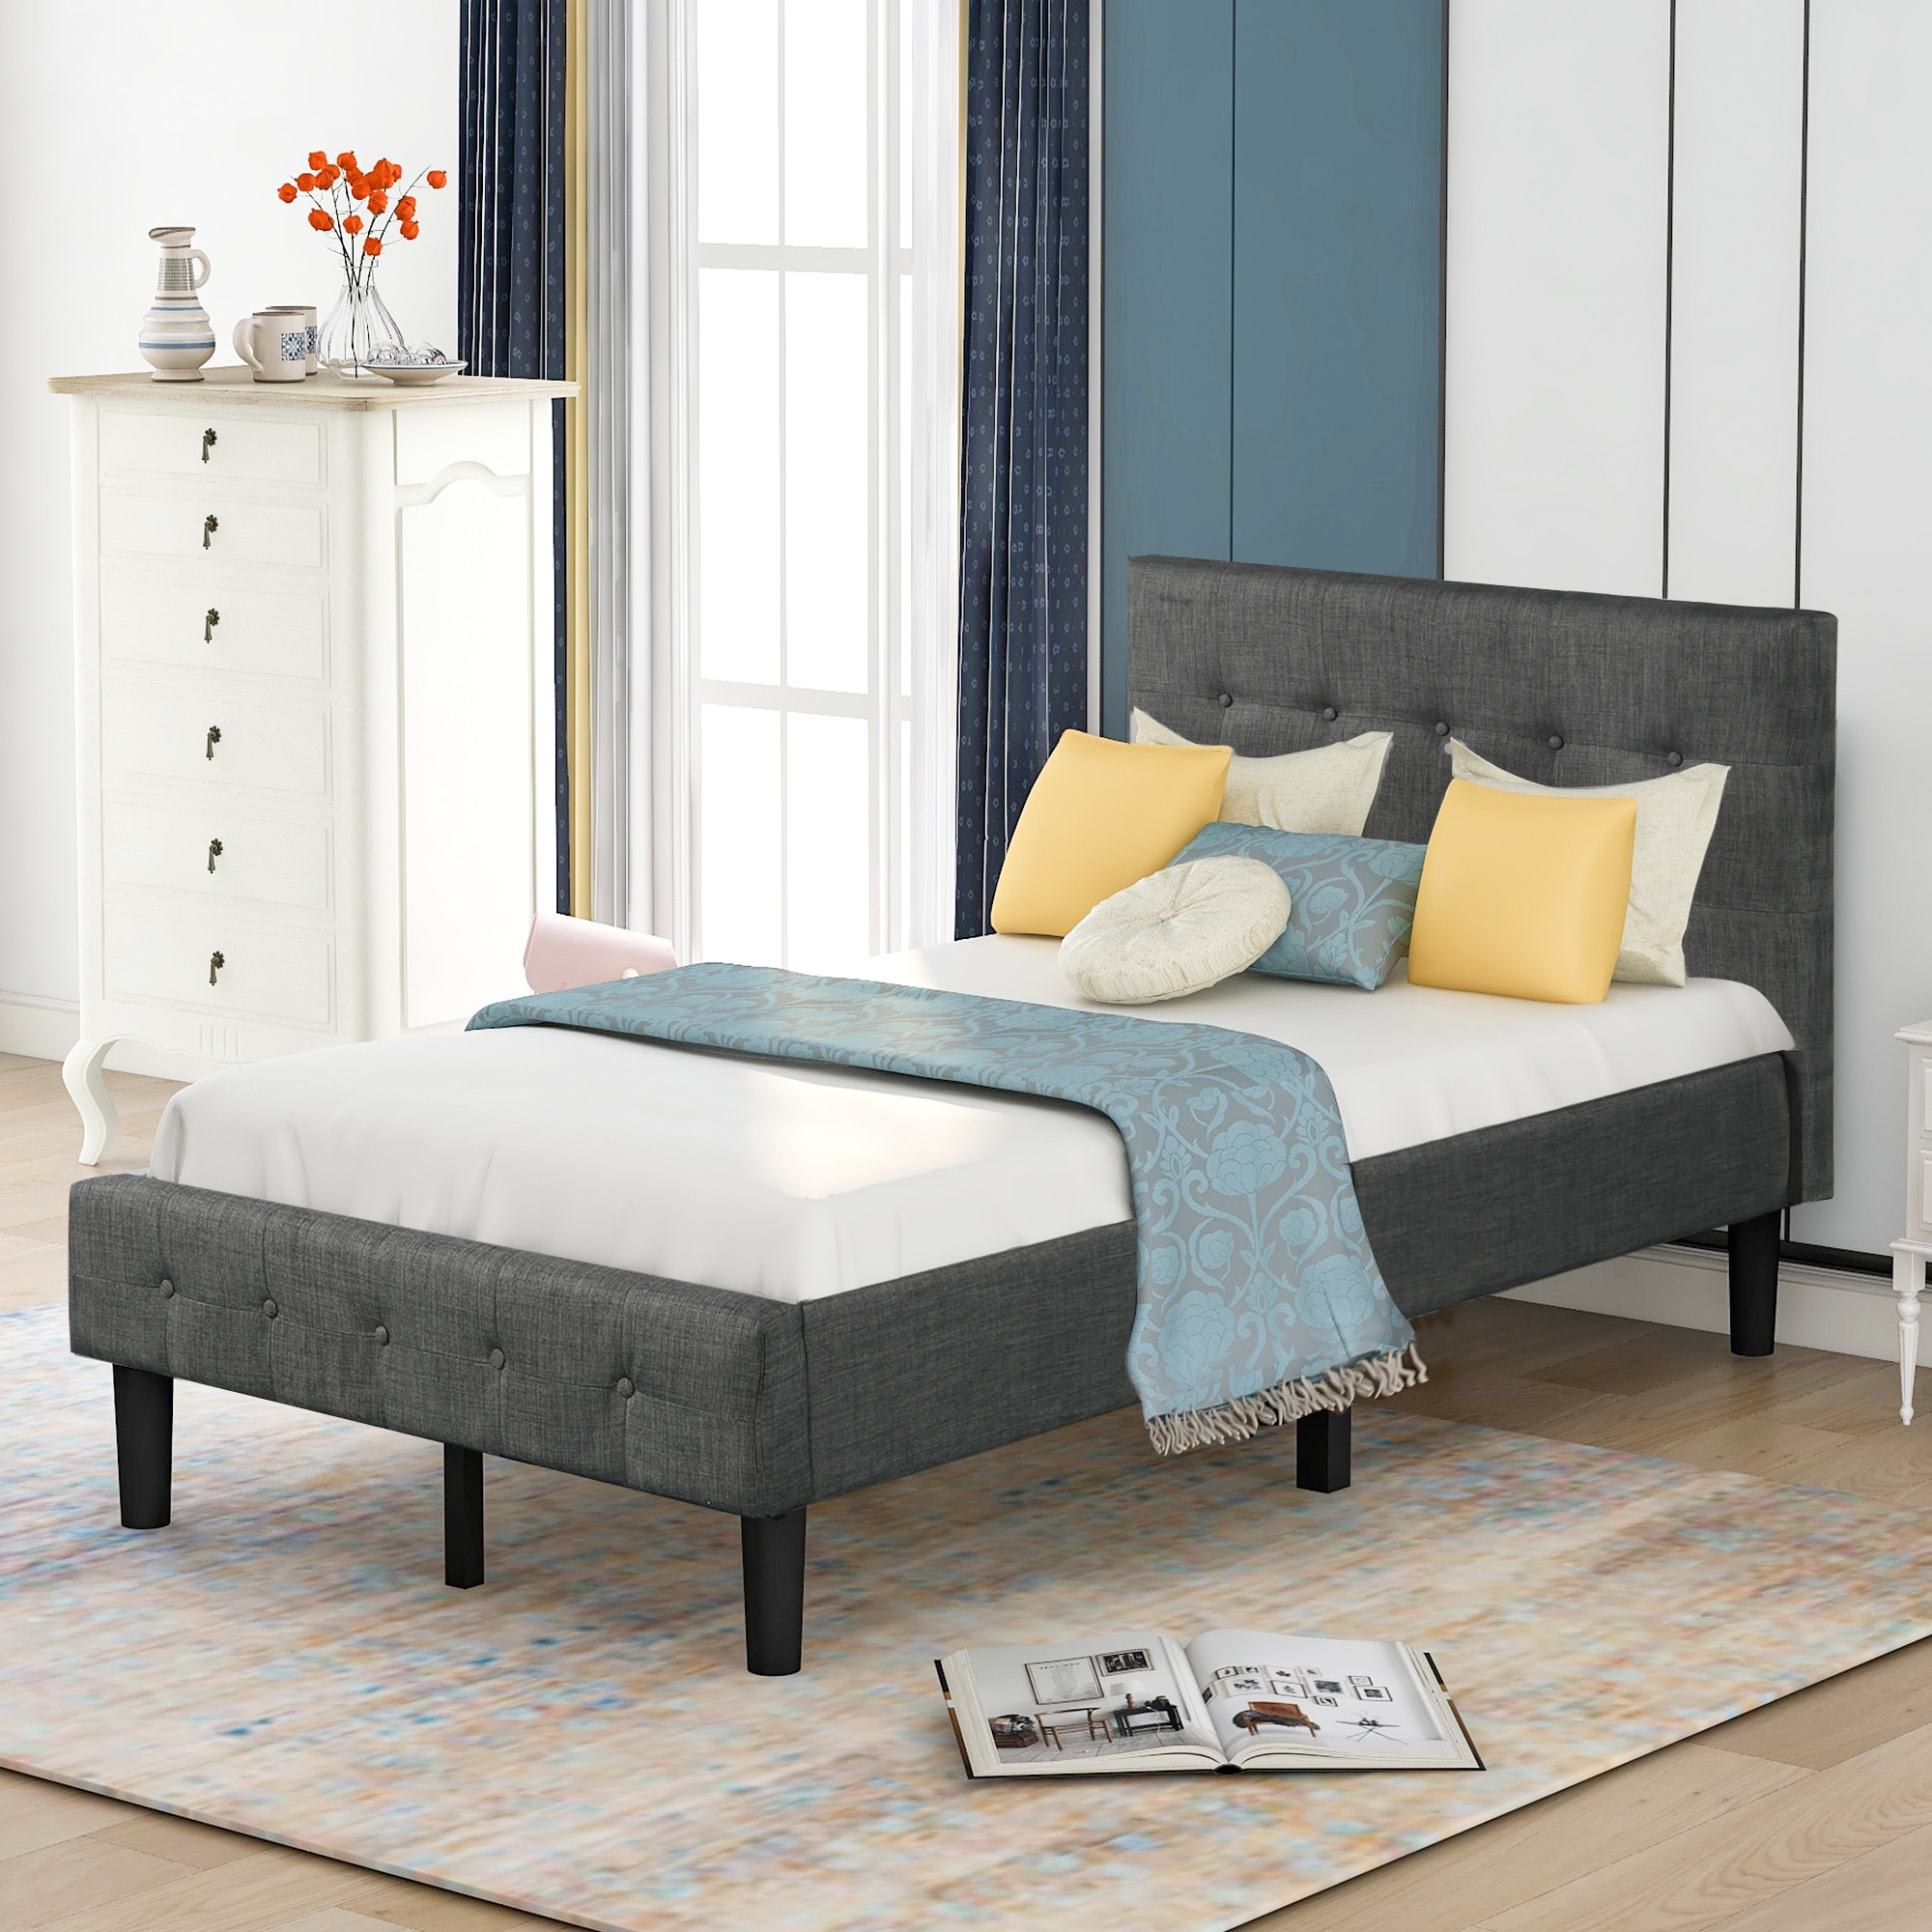 Platform Bed with Wooden Slat Support and Tufted Headboard and Footboard (Twin) Bedroom Furniture for Livingroom US Warehouse